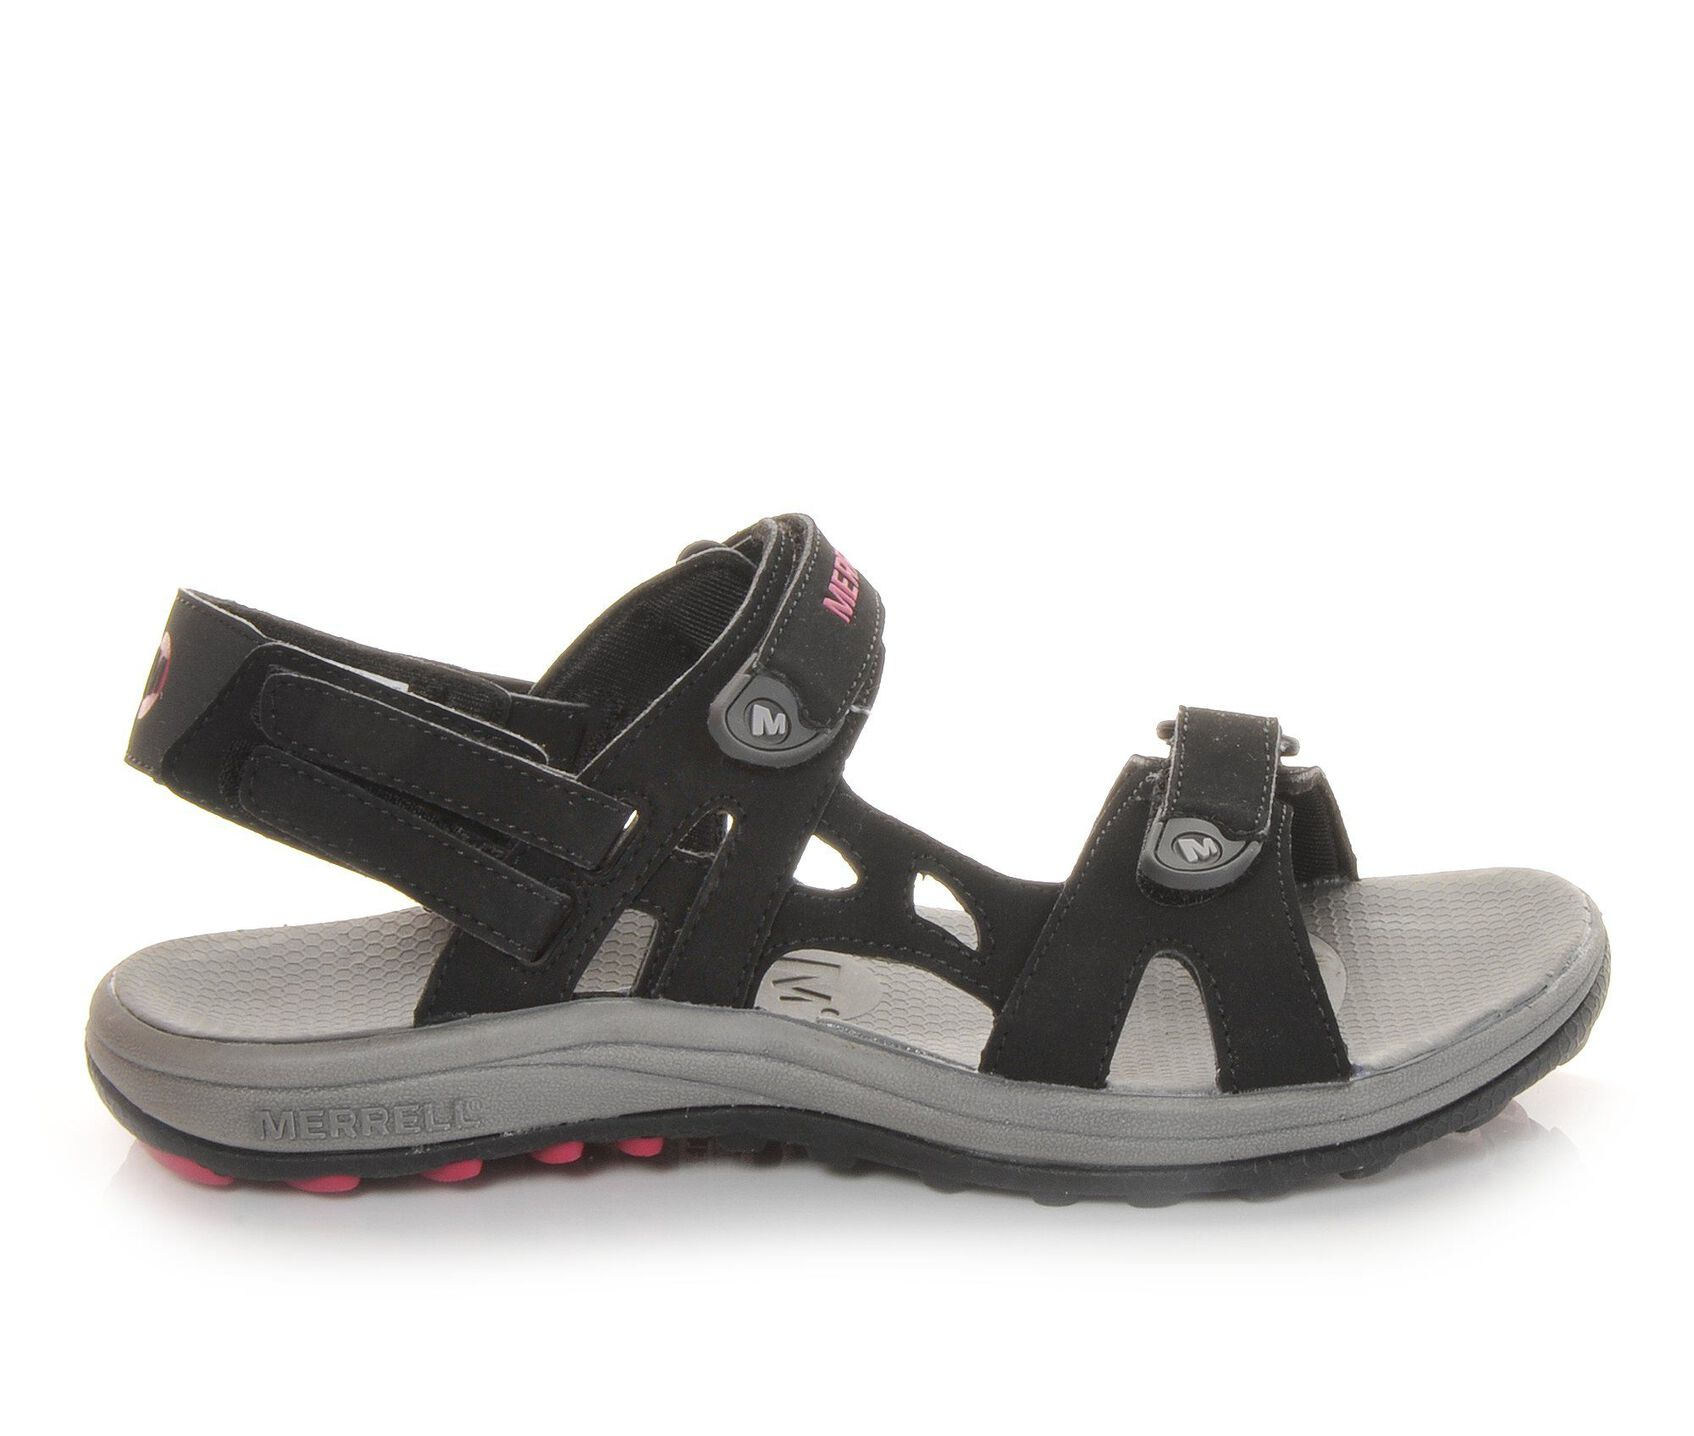 ee85165602c1 Women s Merrell Cedrus Convertible Hiking Sandals